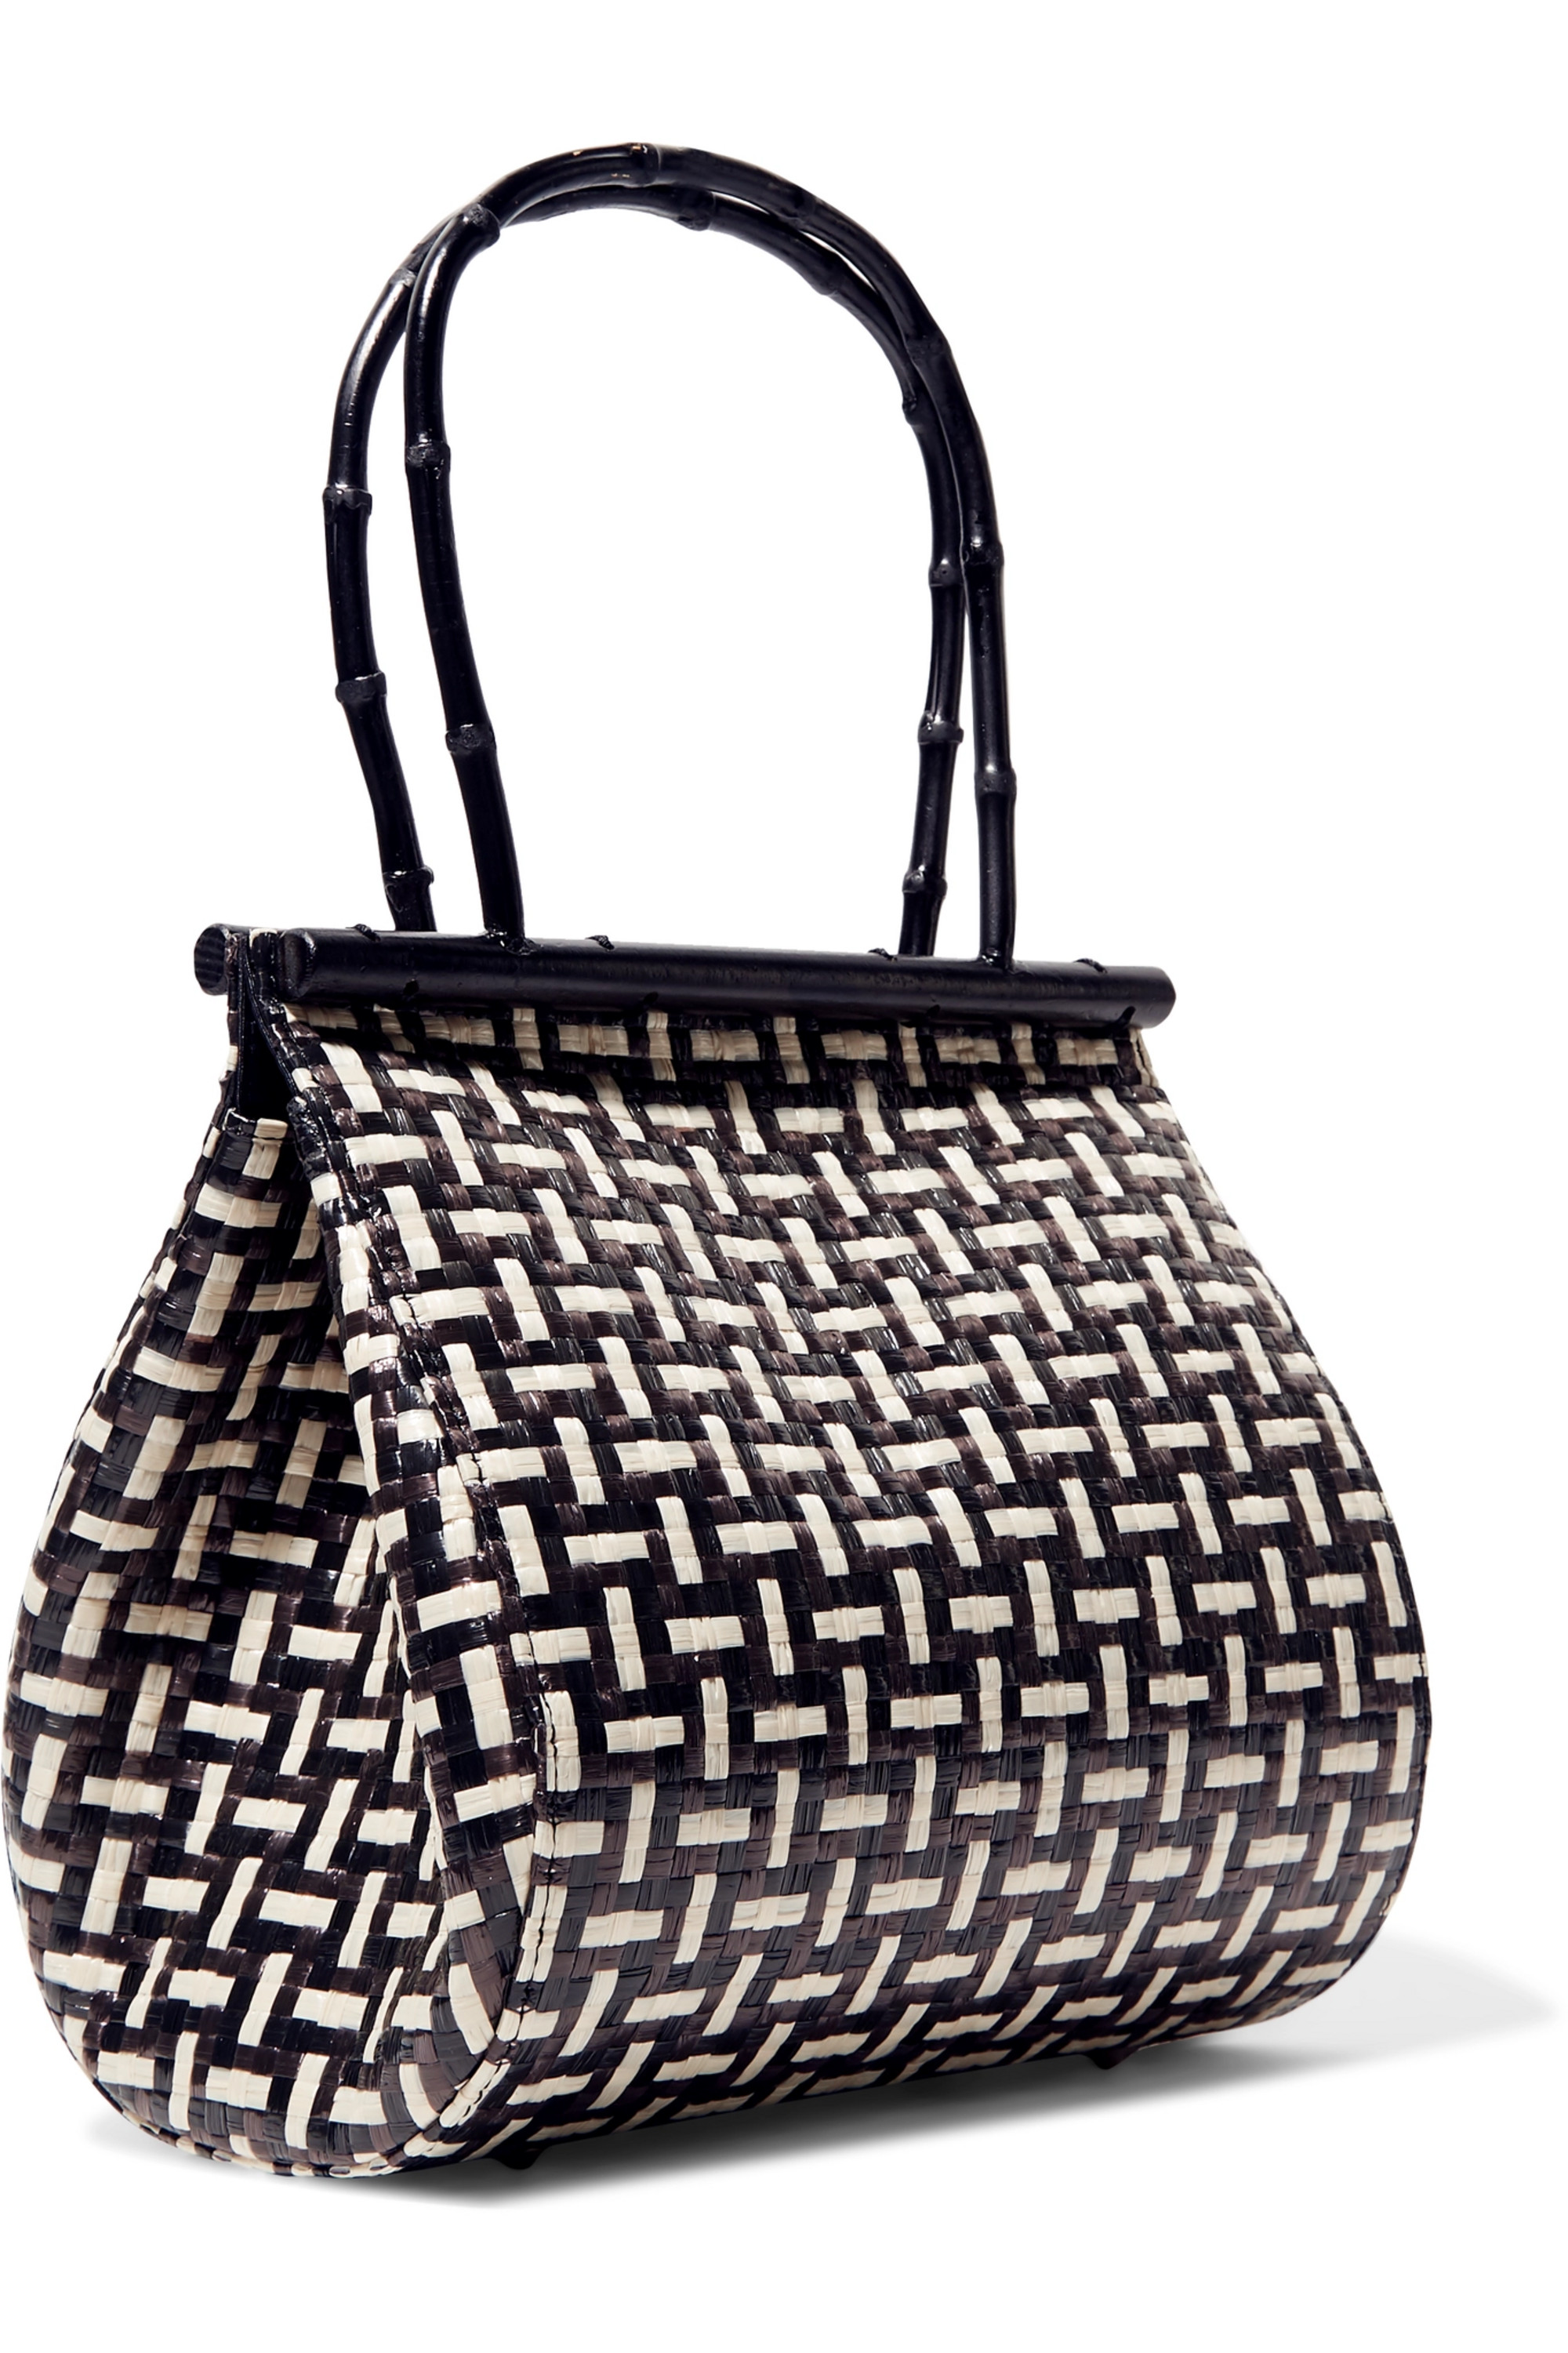 Cult Gaia Via woven straw and bamboo tote